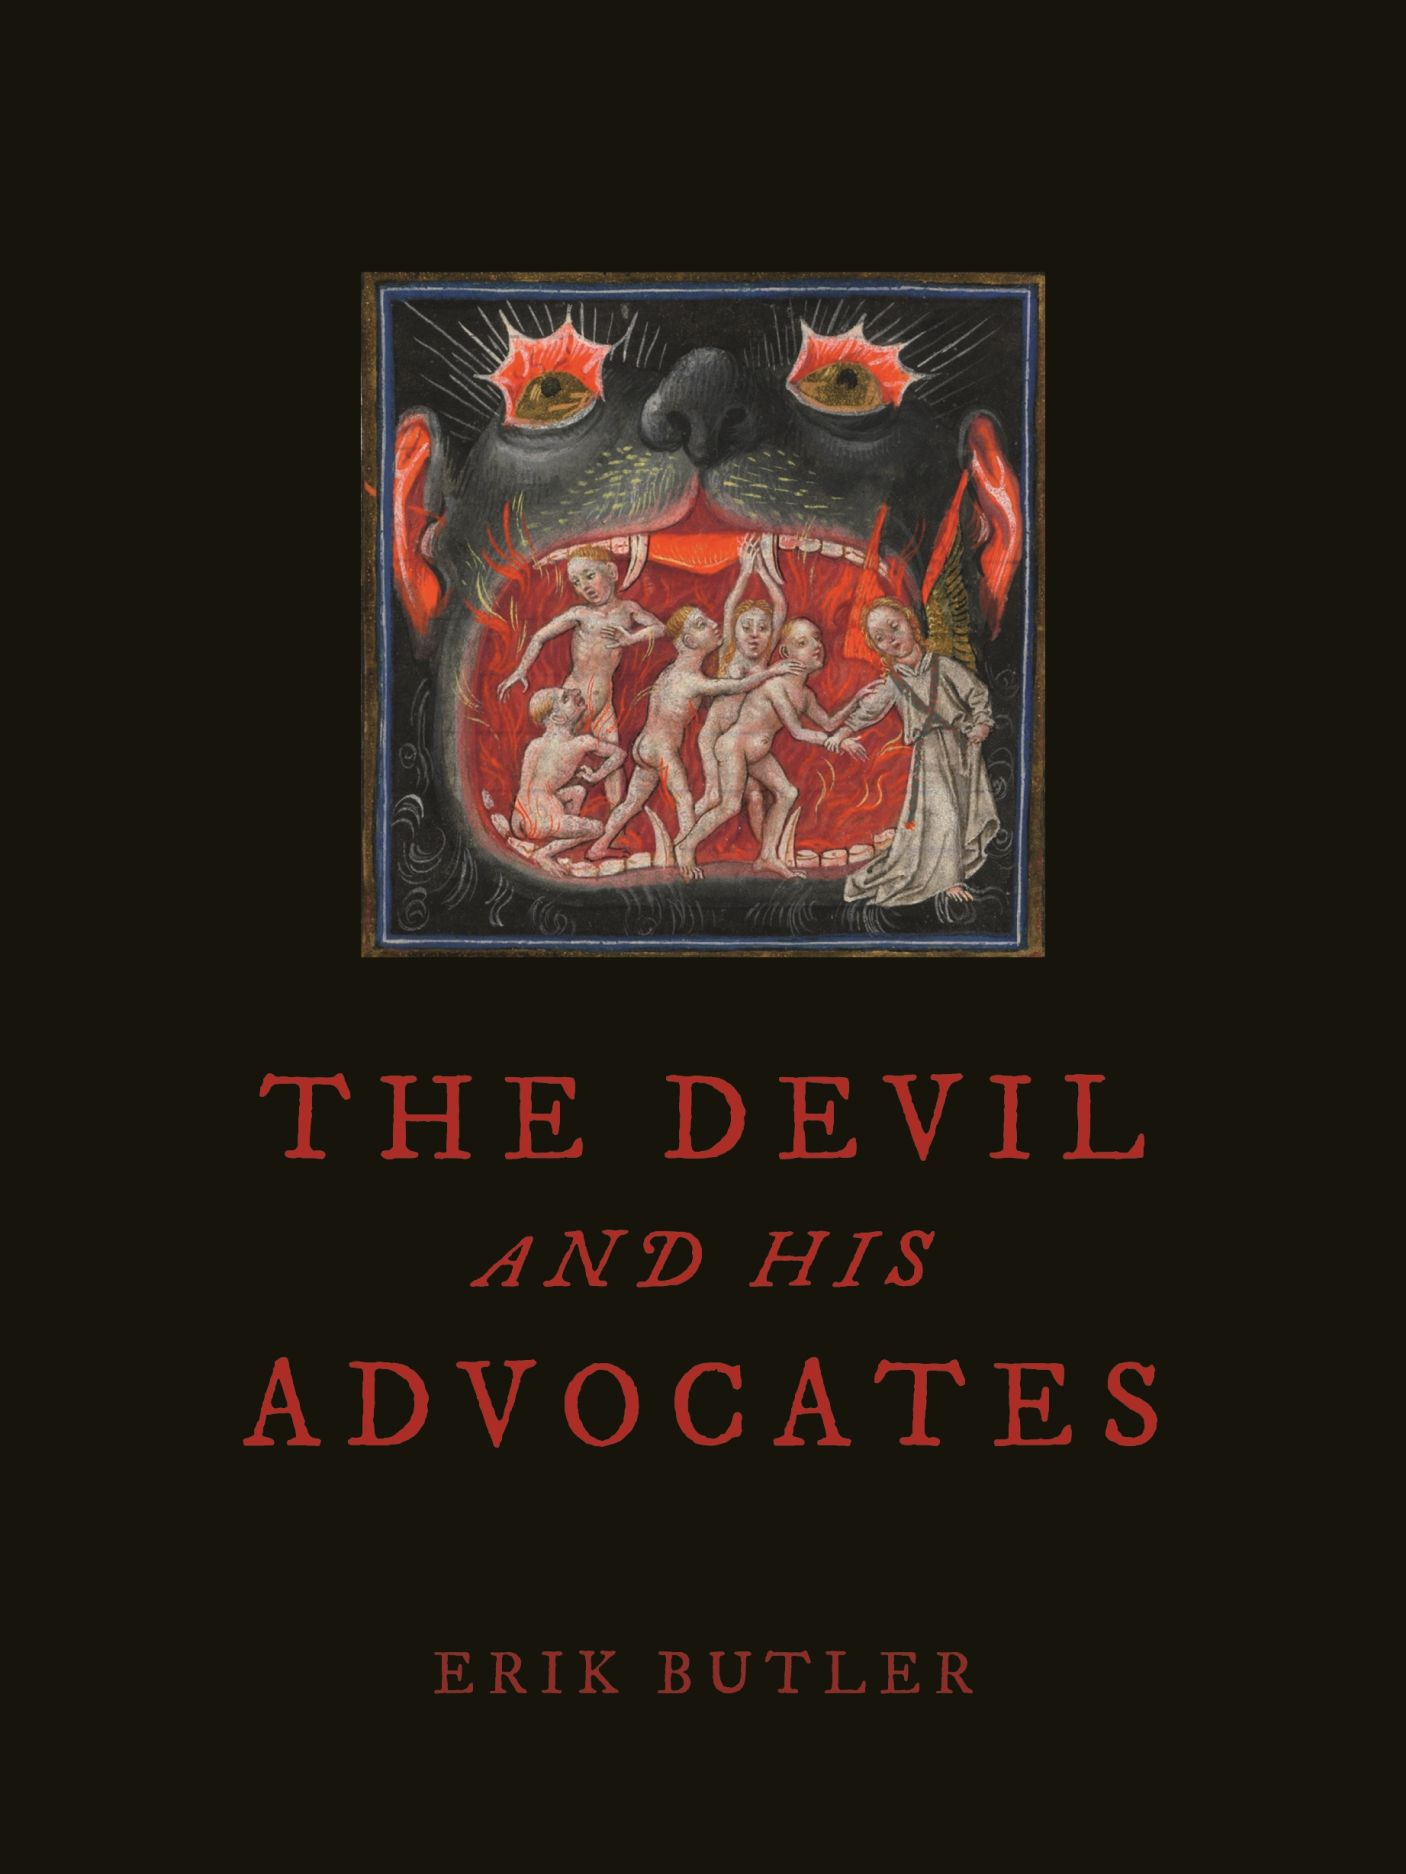 The Devil and His Advocates